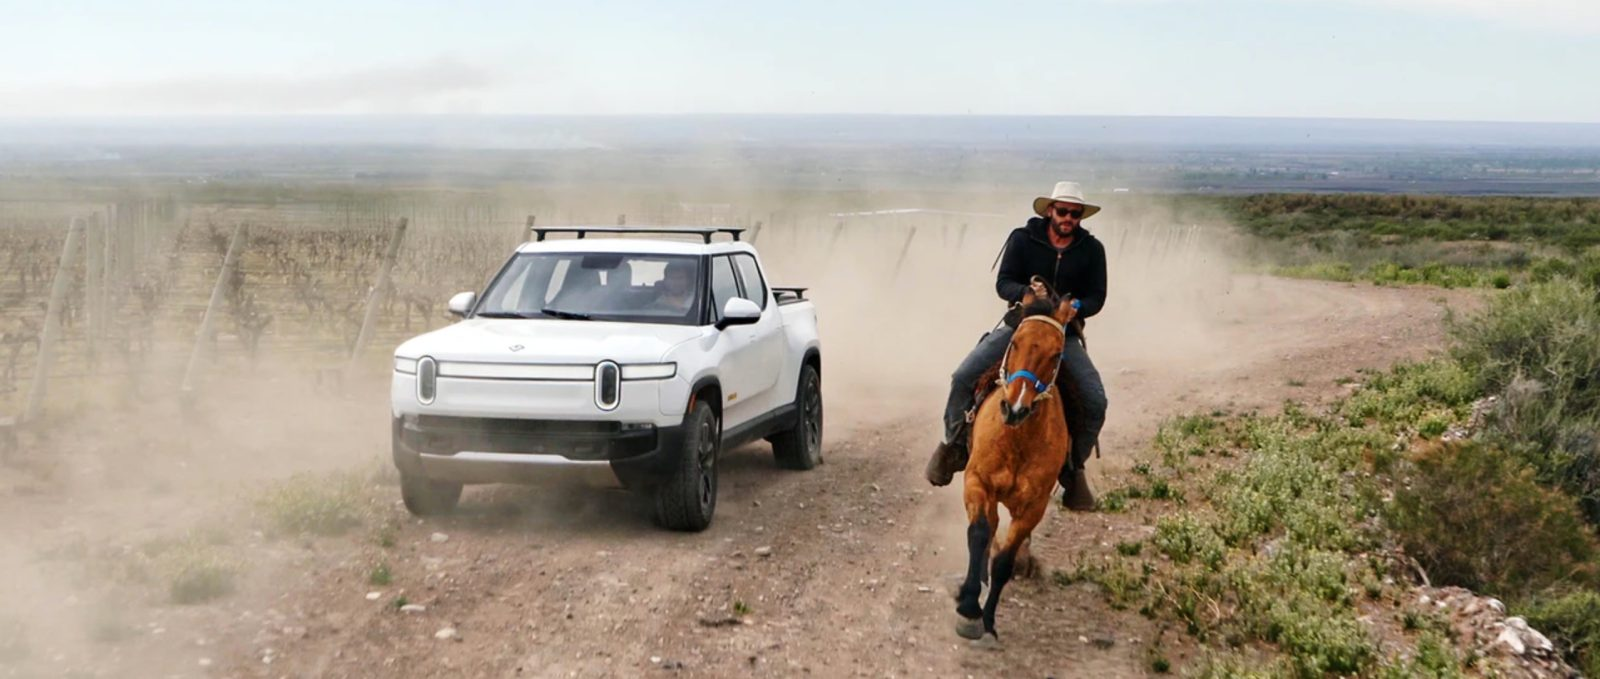 Rivian R1T electric pickup traveled 314 miles on a charge, releases video off-roading